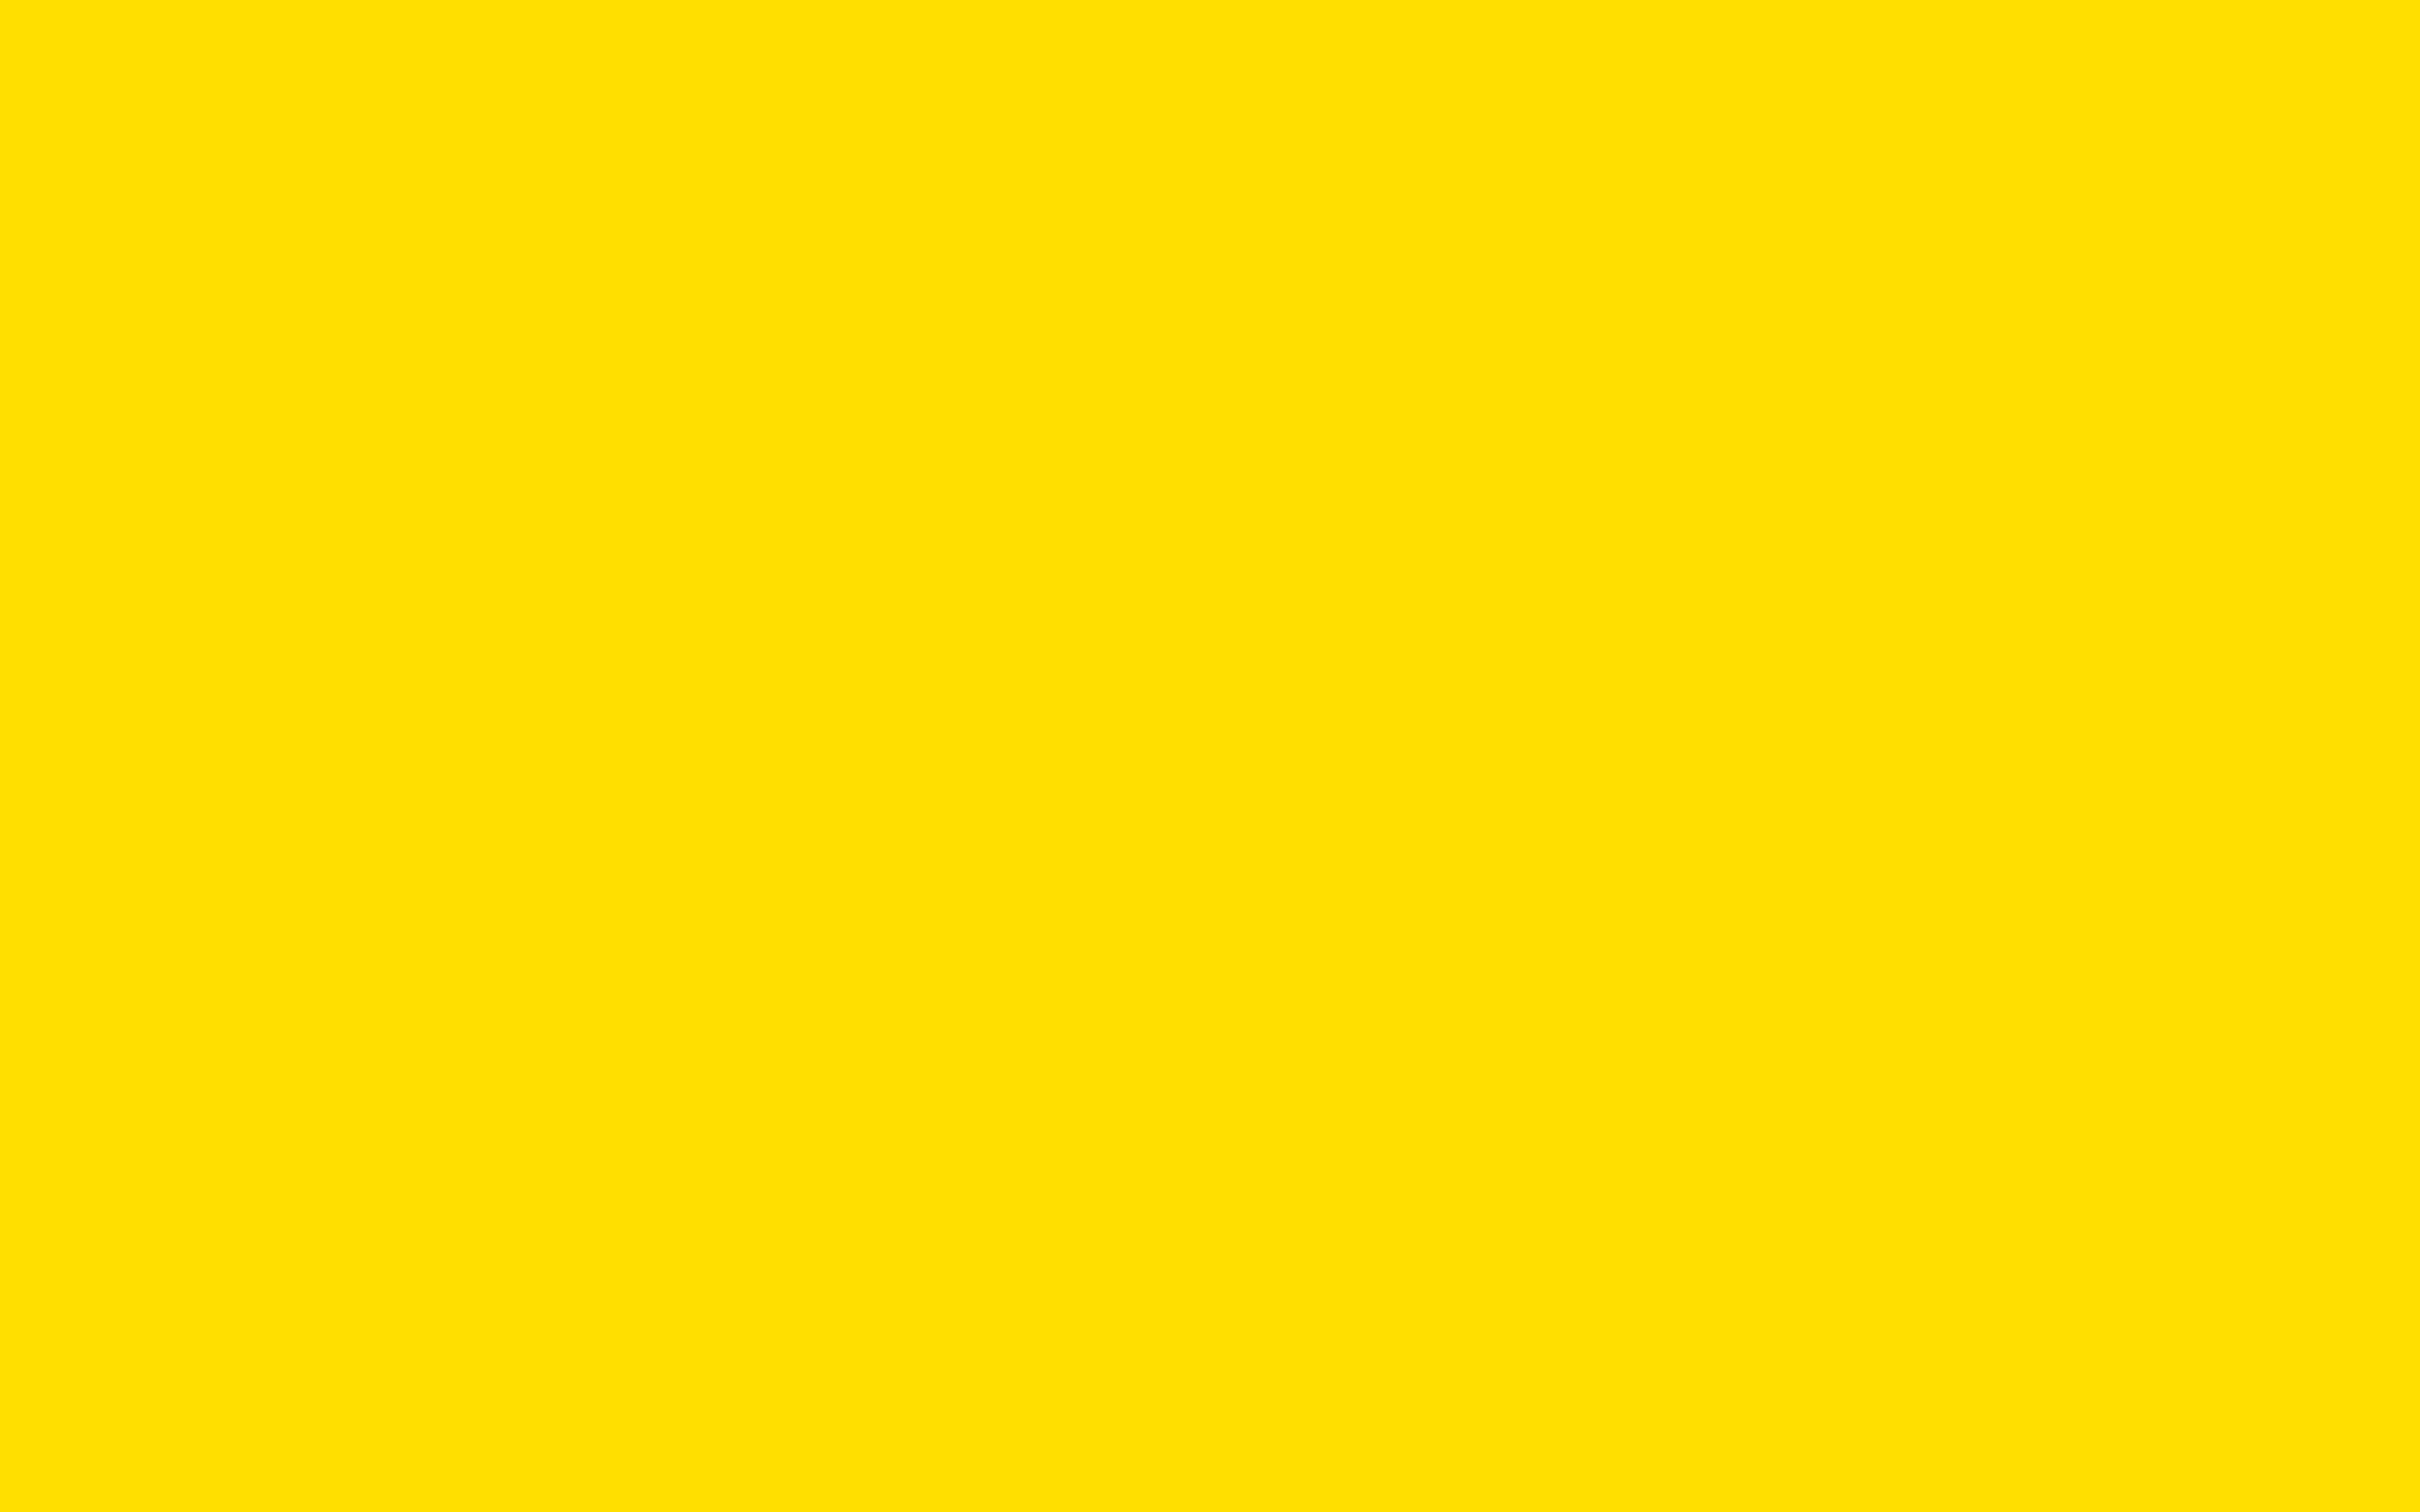 2880x1800 Yellow Pantone Solid Color Background